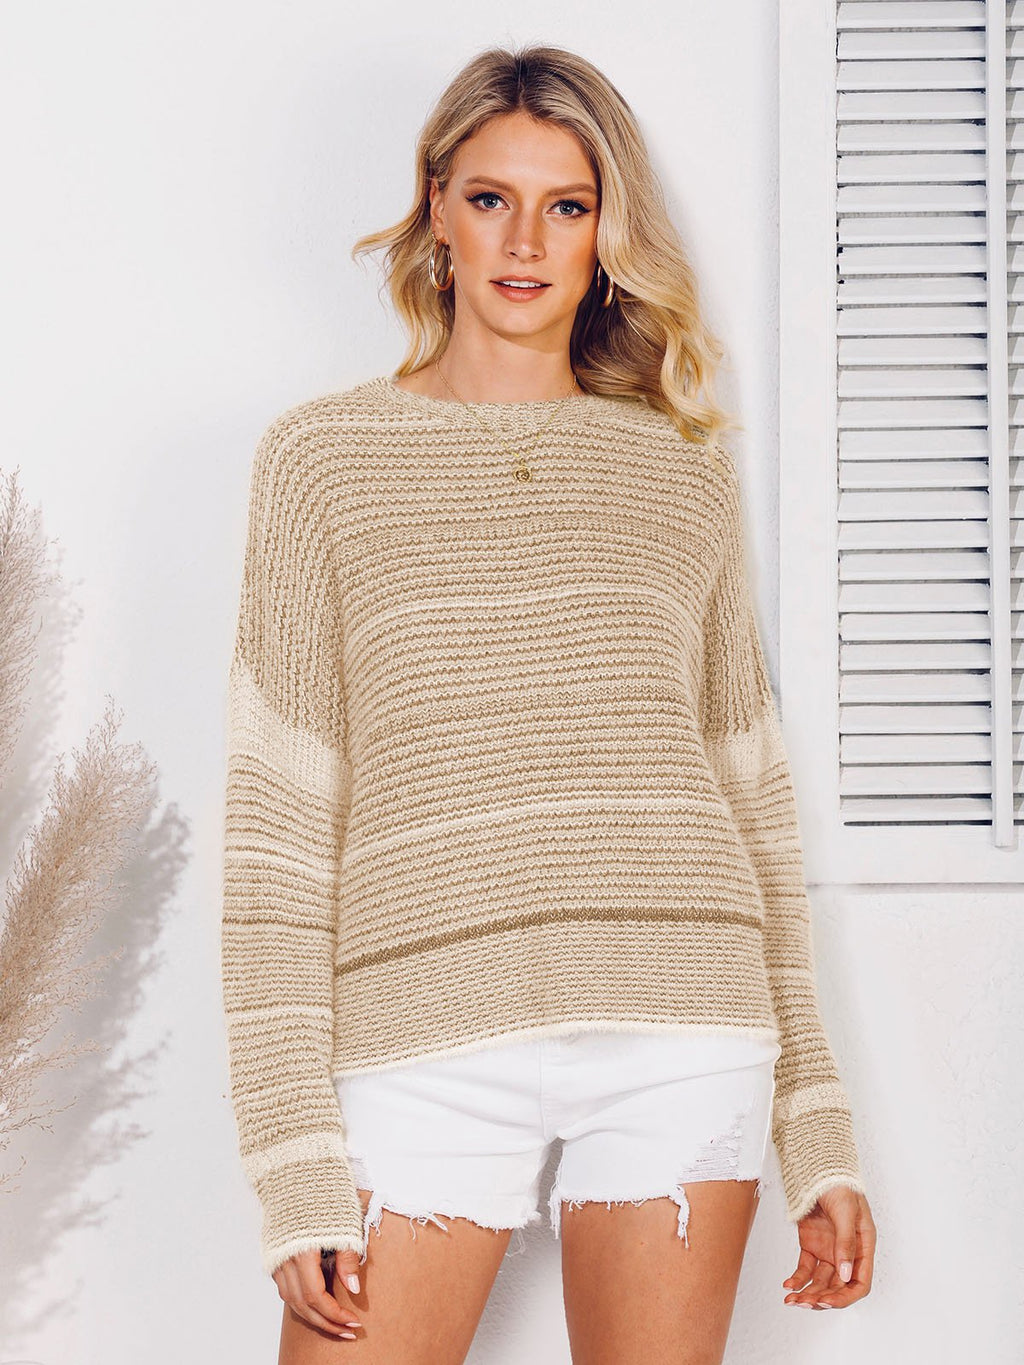 Crew Neck Knitted Striped Casual Sweater